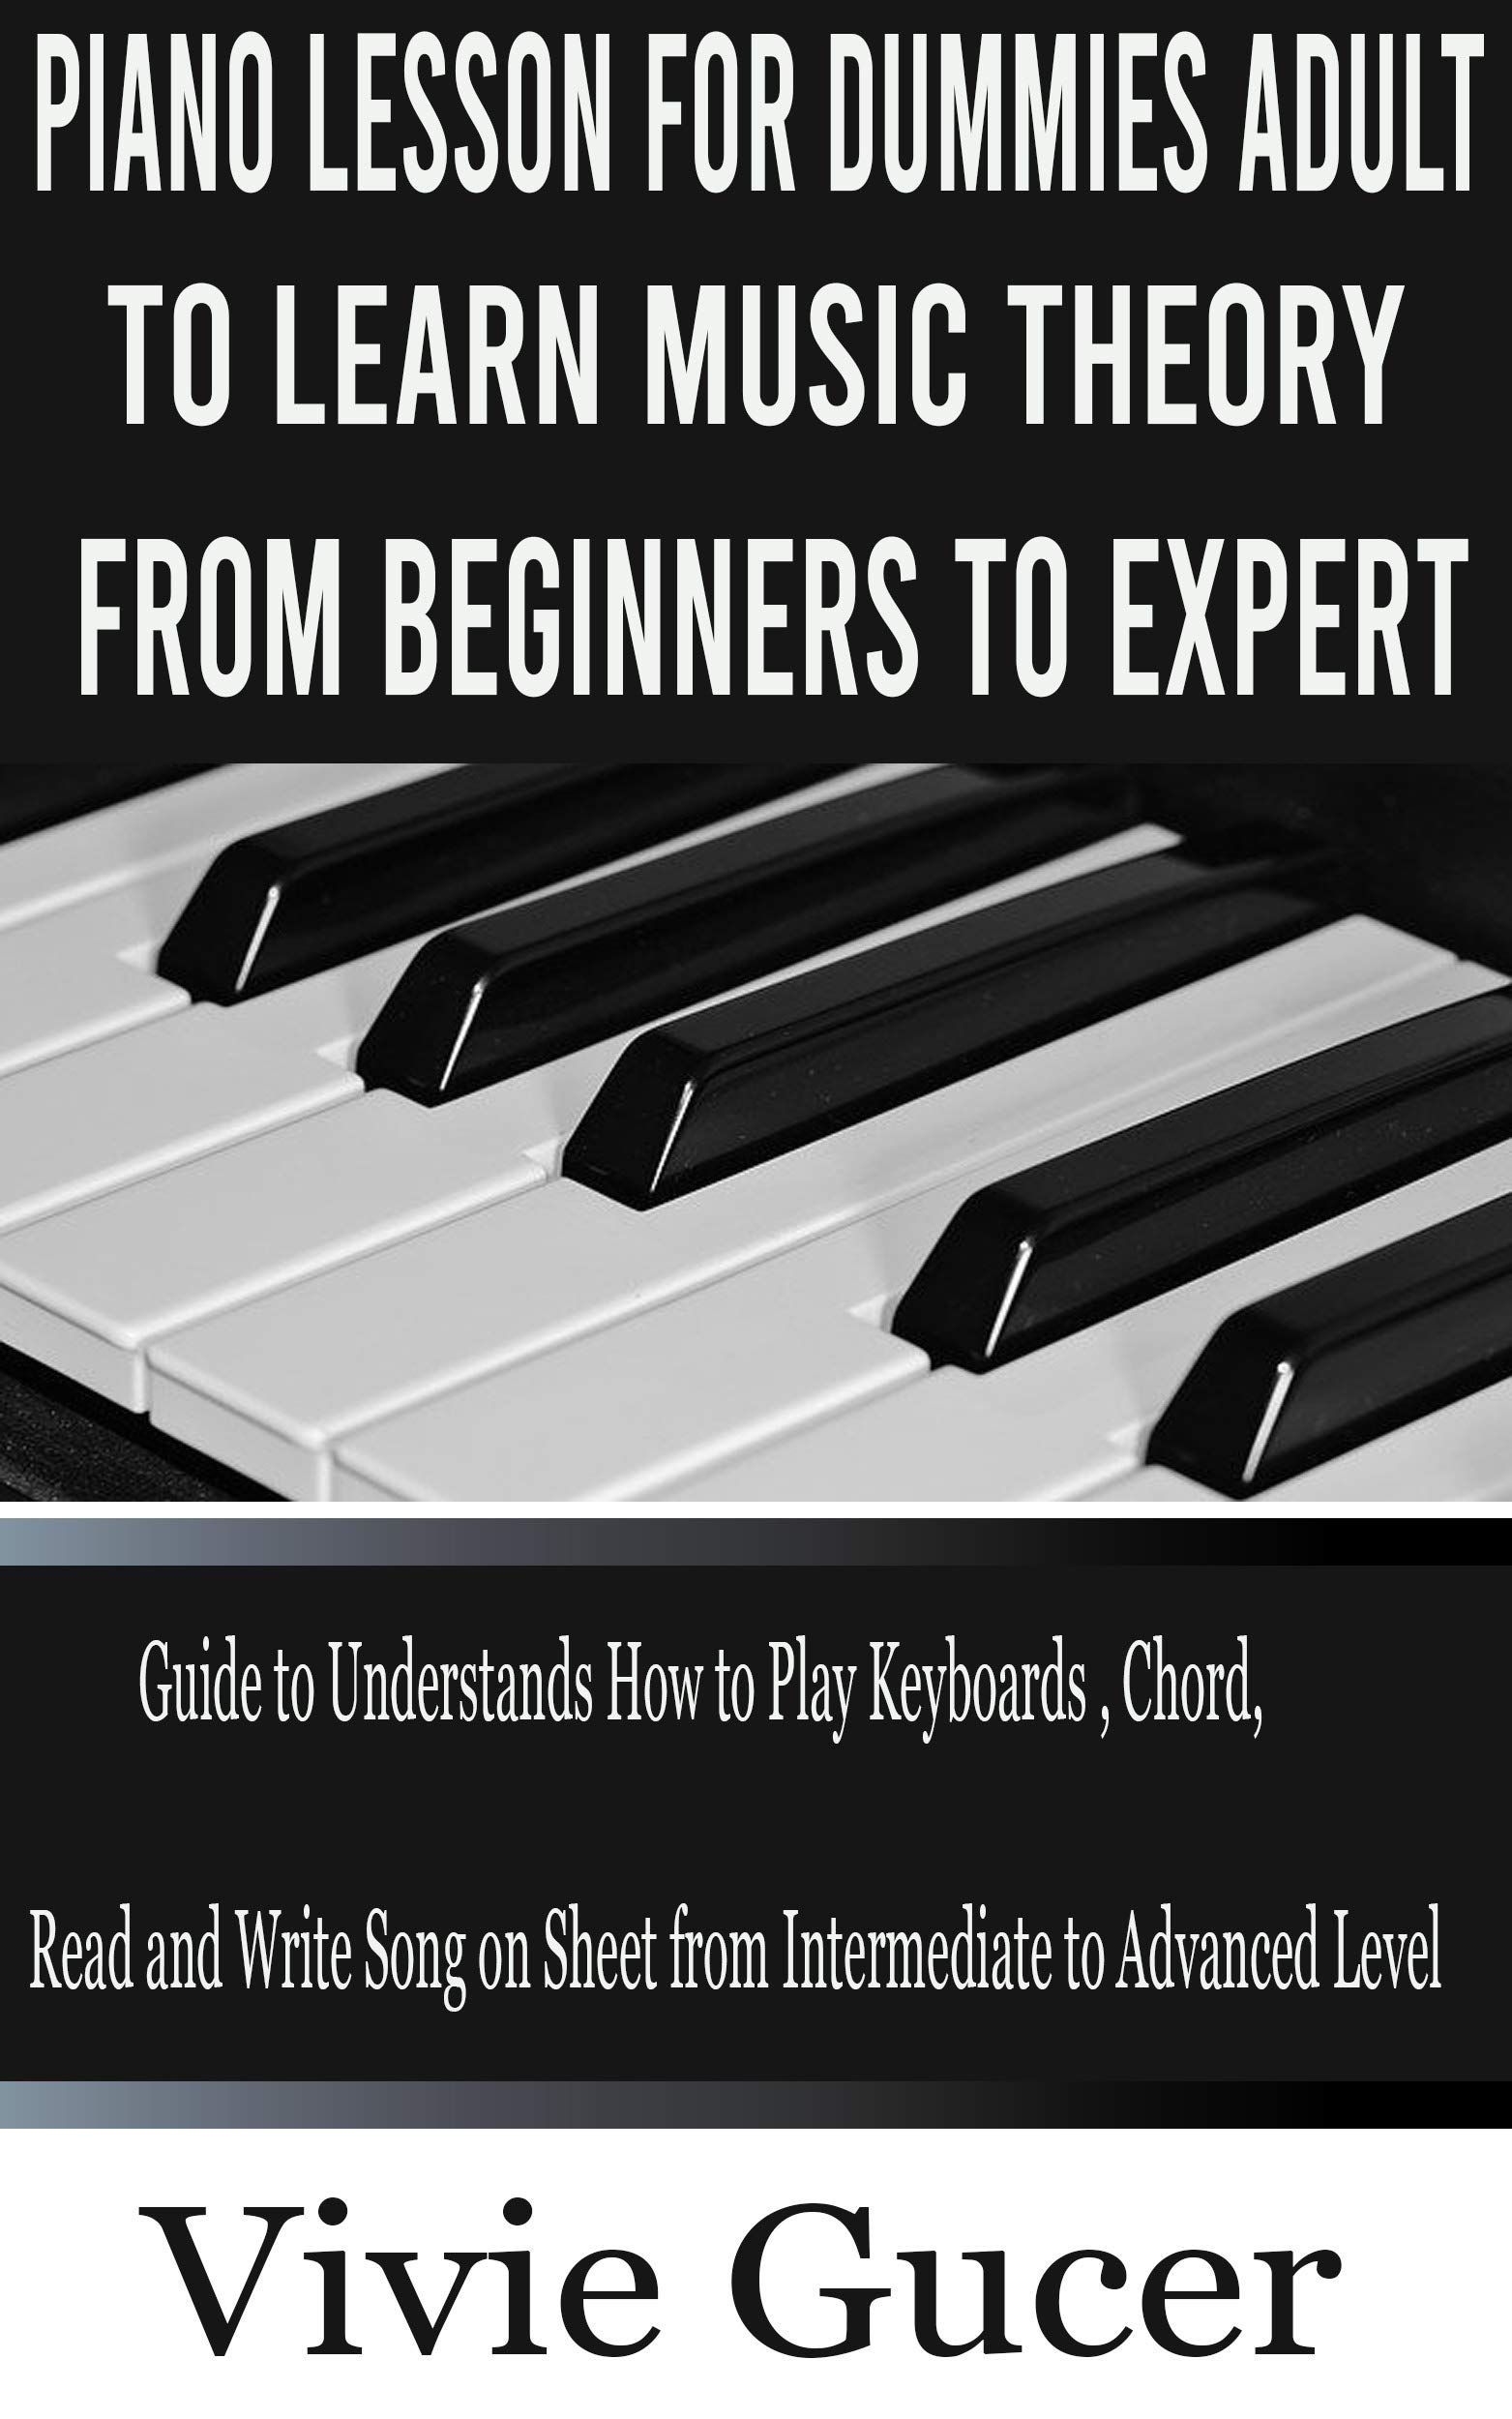 Piano Lesson for Dummies Adult to Learn Music Theory from Beginners to Expert: Guide to Understands How to Play Keyboards, Chord, Jazz, Read and Write ... Sheet from Intermediate to Advanced Level